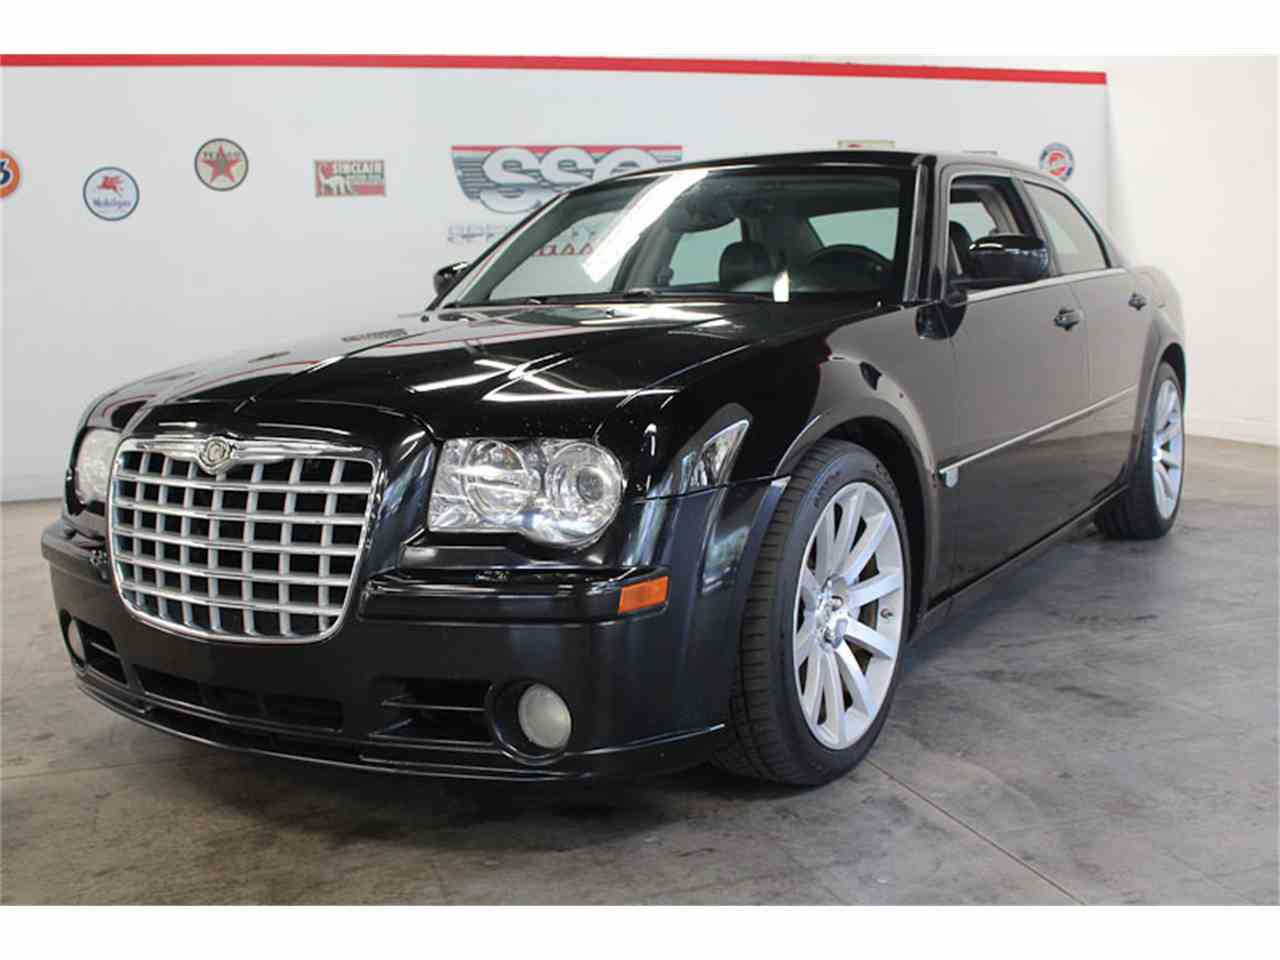 Large Picture of 2007 Chrysler 200 located in California - LS4P